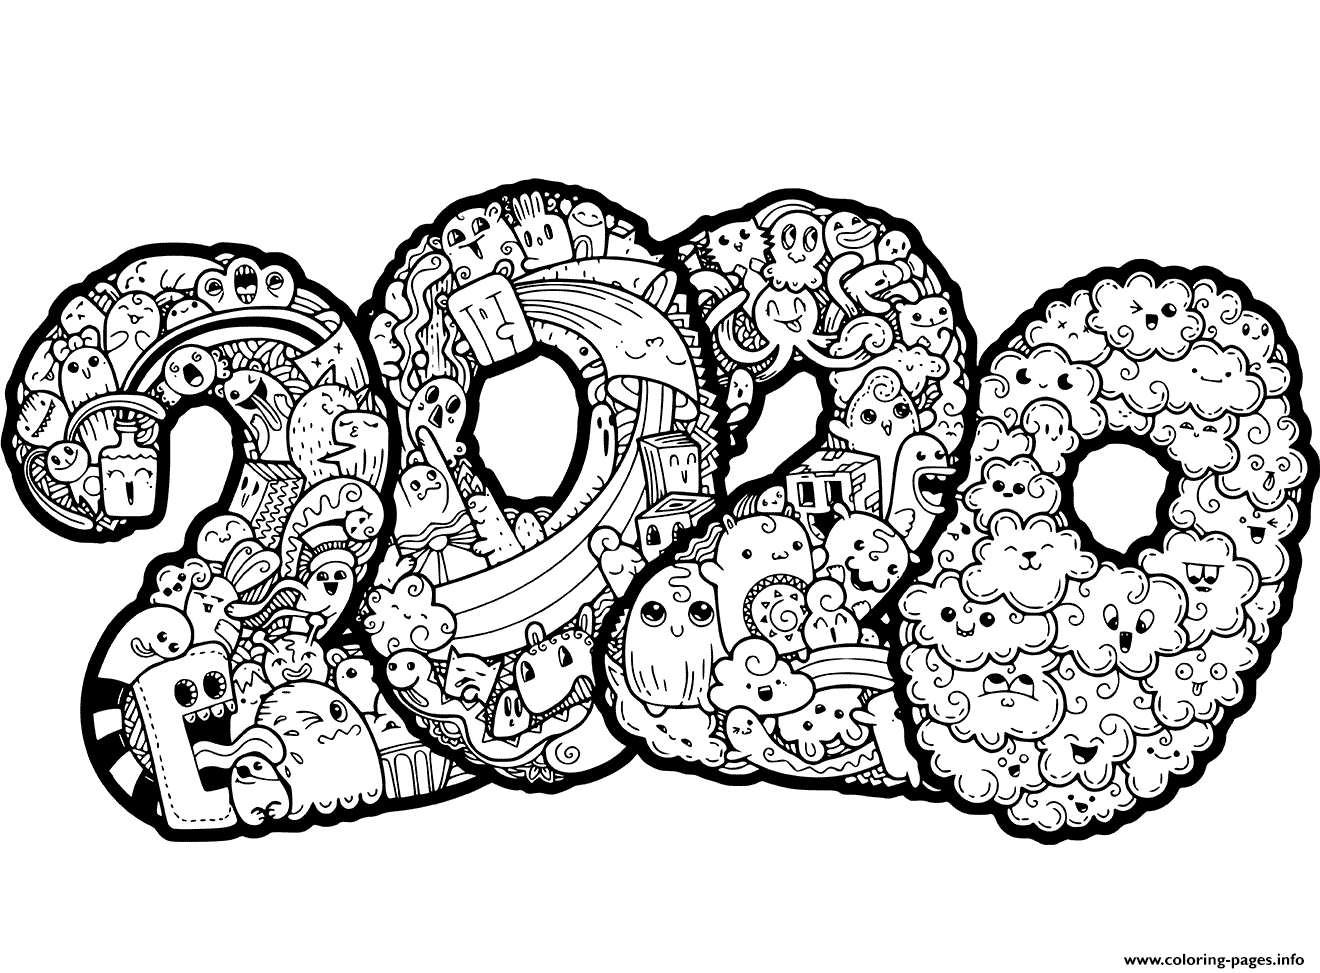 coloring pages 2020 2020 new year zentangle inspired style zen coloring pages coloring 2020 pages